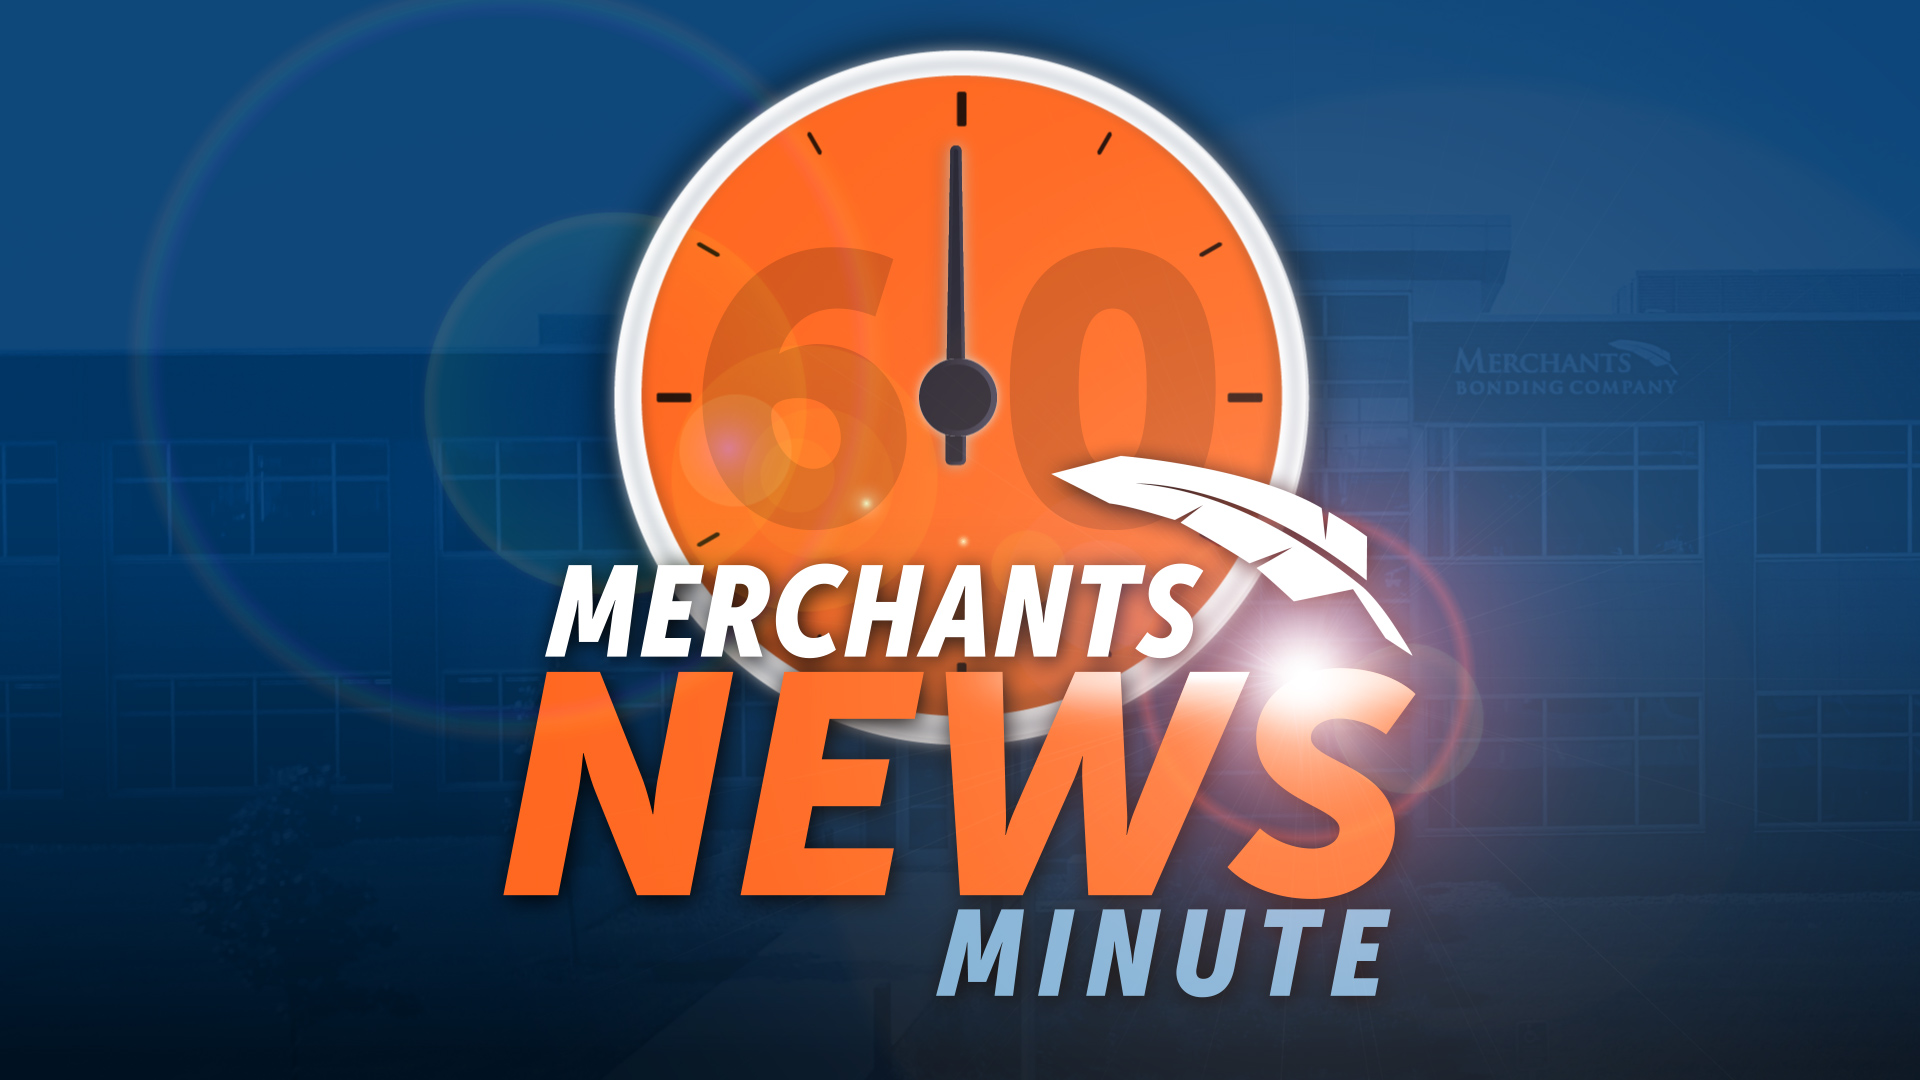 Merchants August News Minute